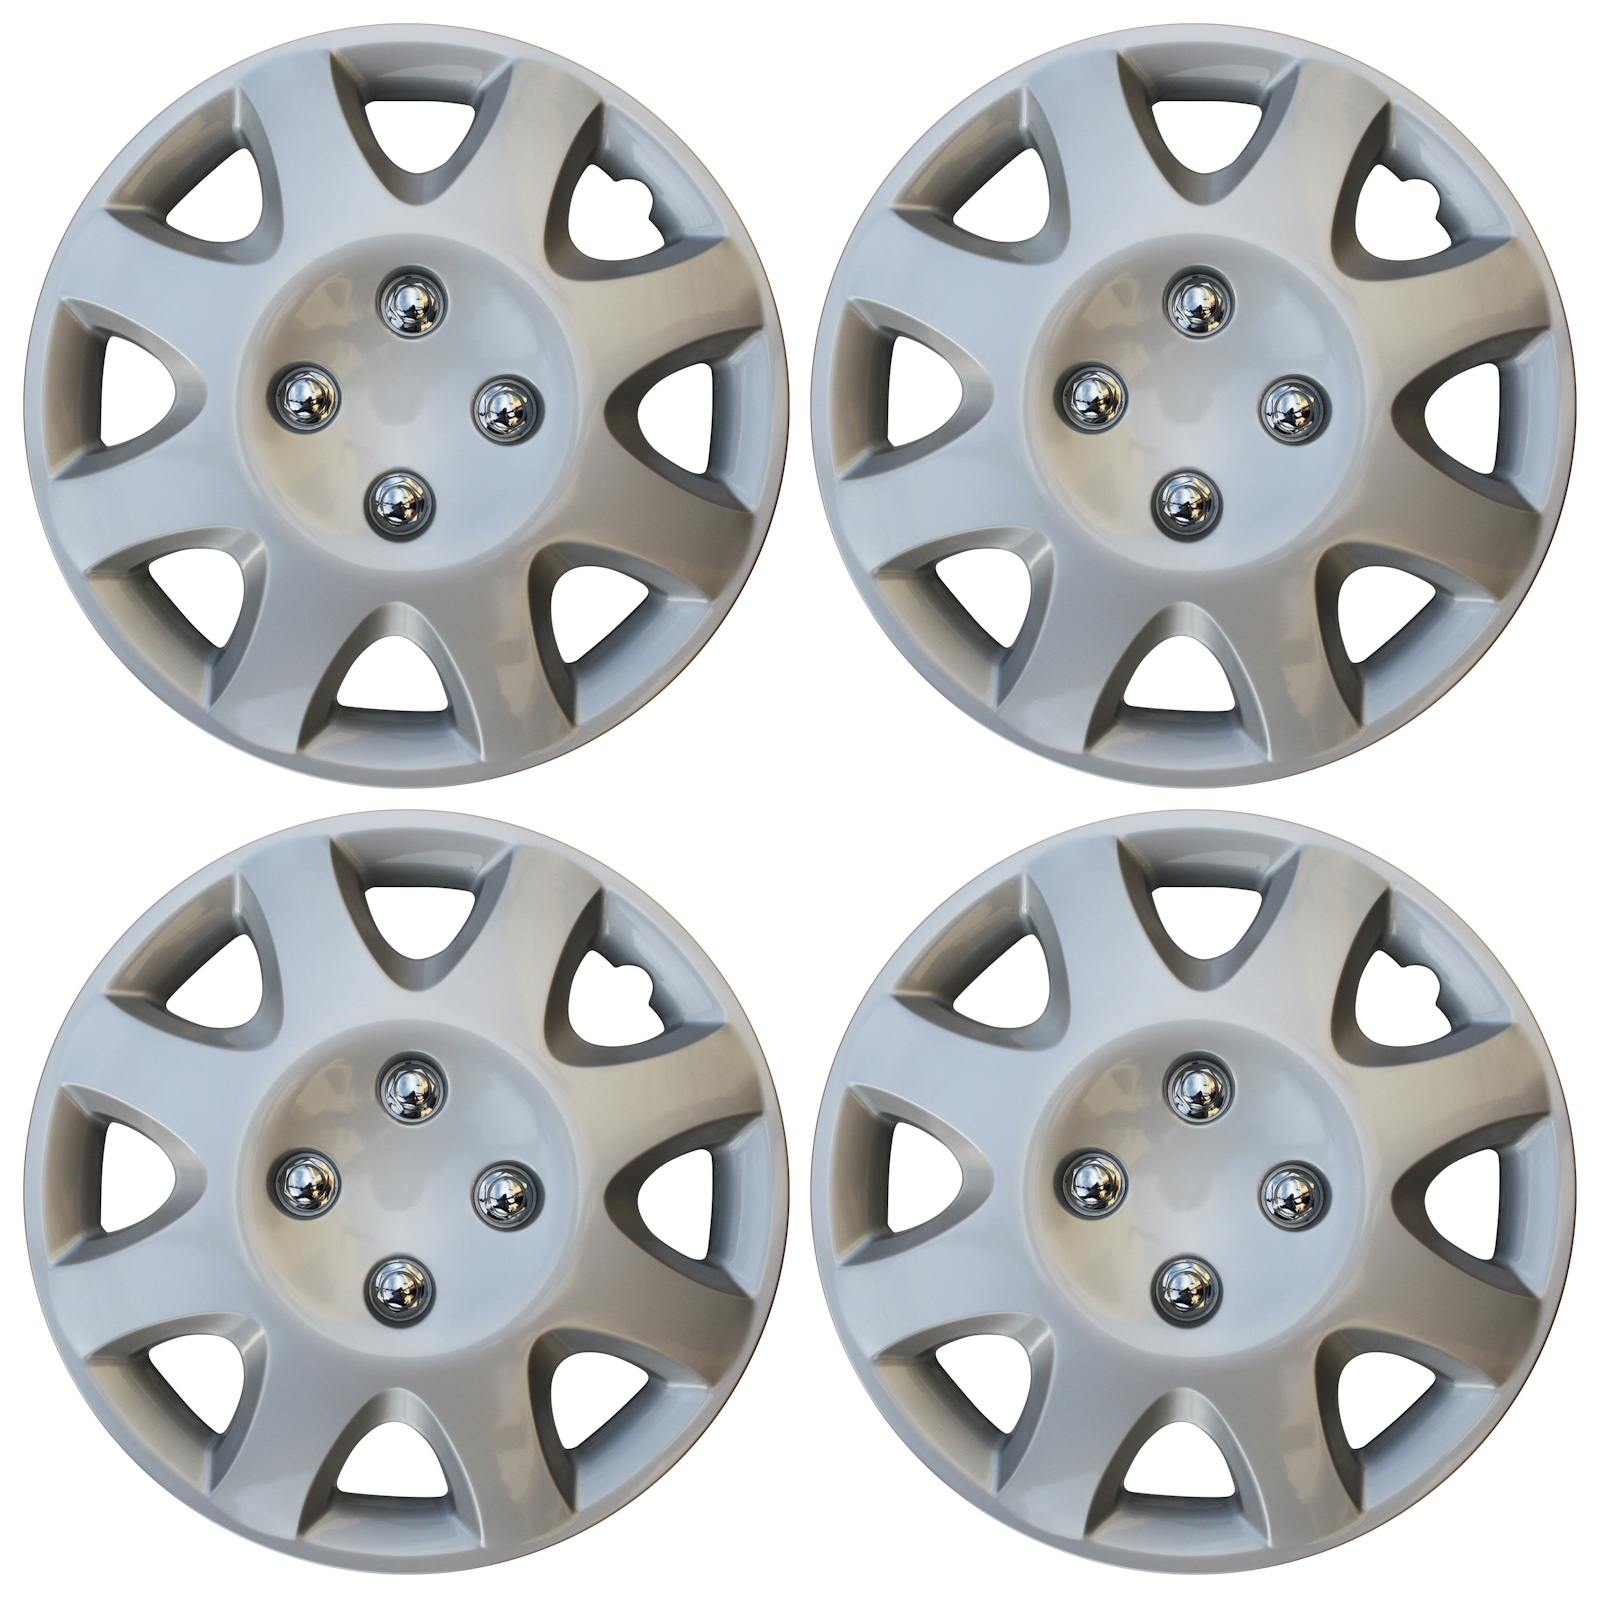 Ford Tractor Hubcaps : Ford model a parts catalog hubcaps tractor